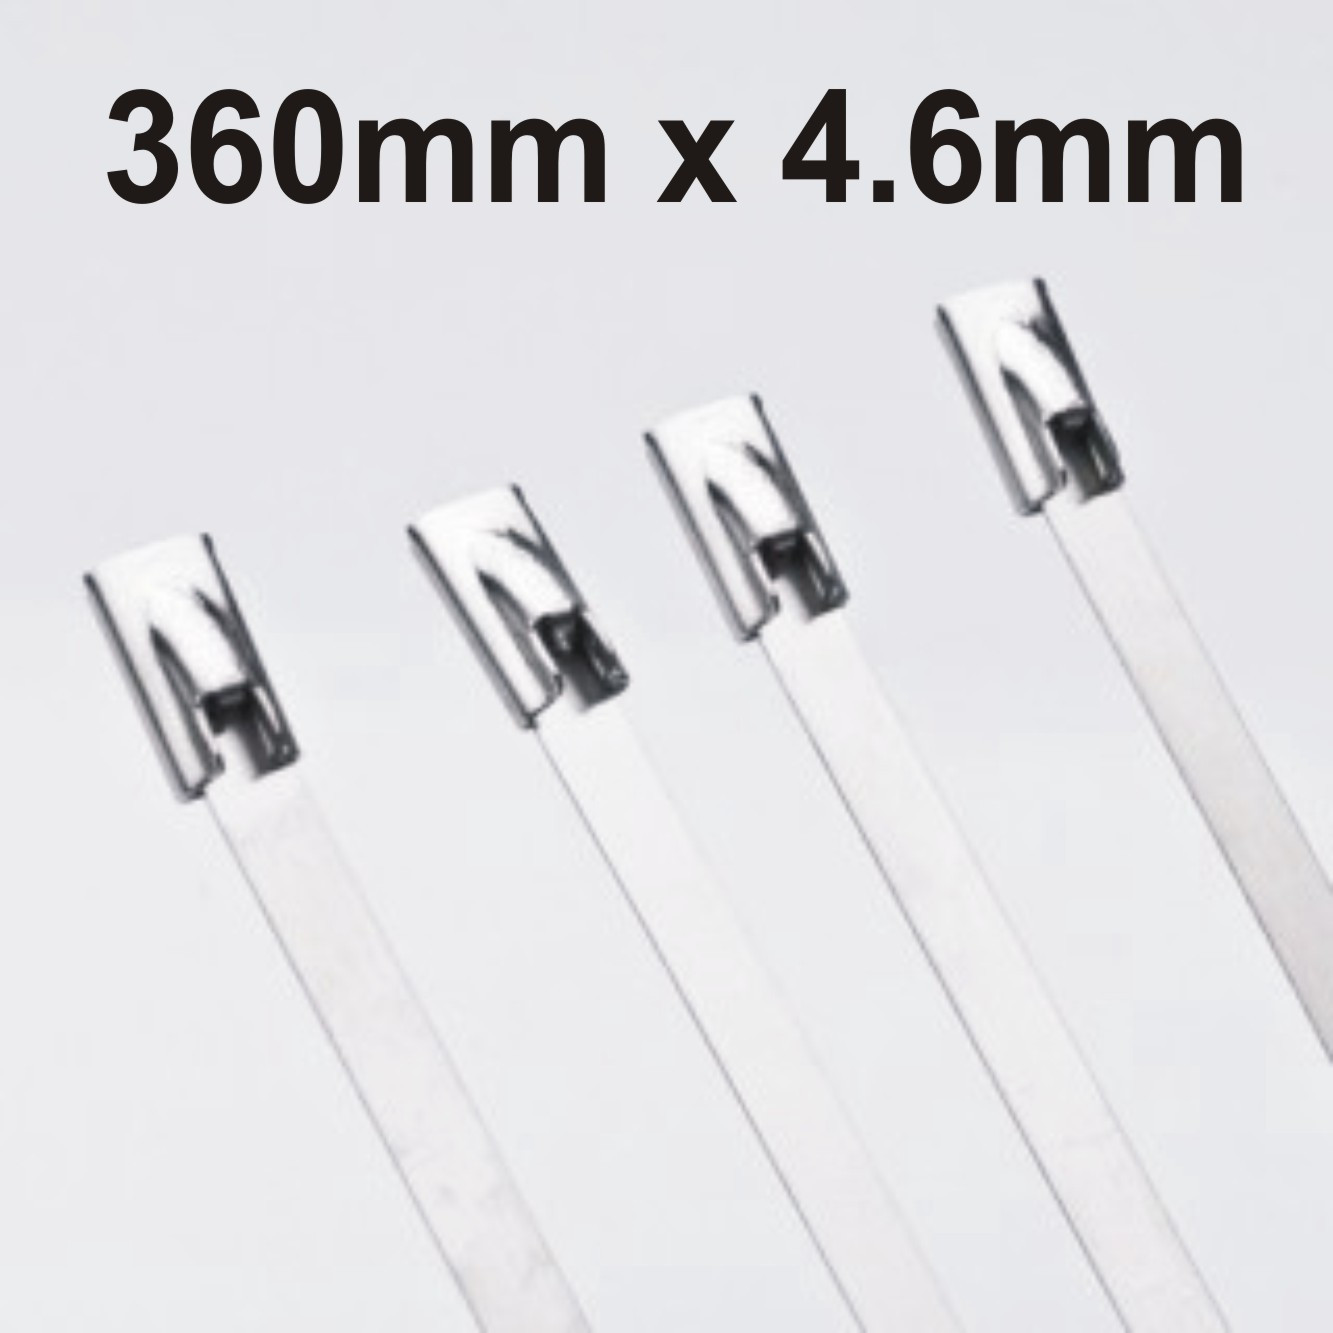 Stainless Steel Cable Ties Uncoated size 360 x 4.6mm